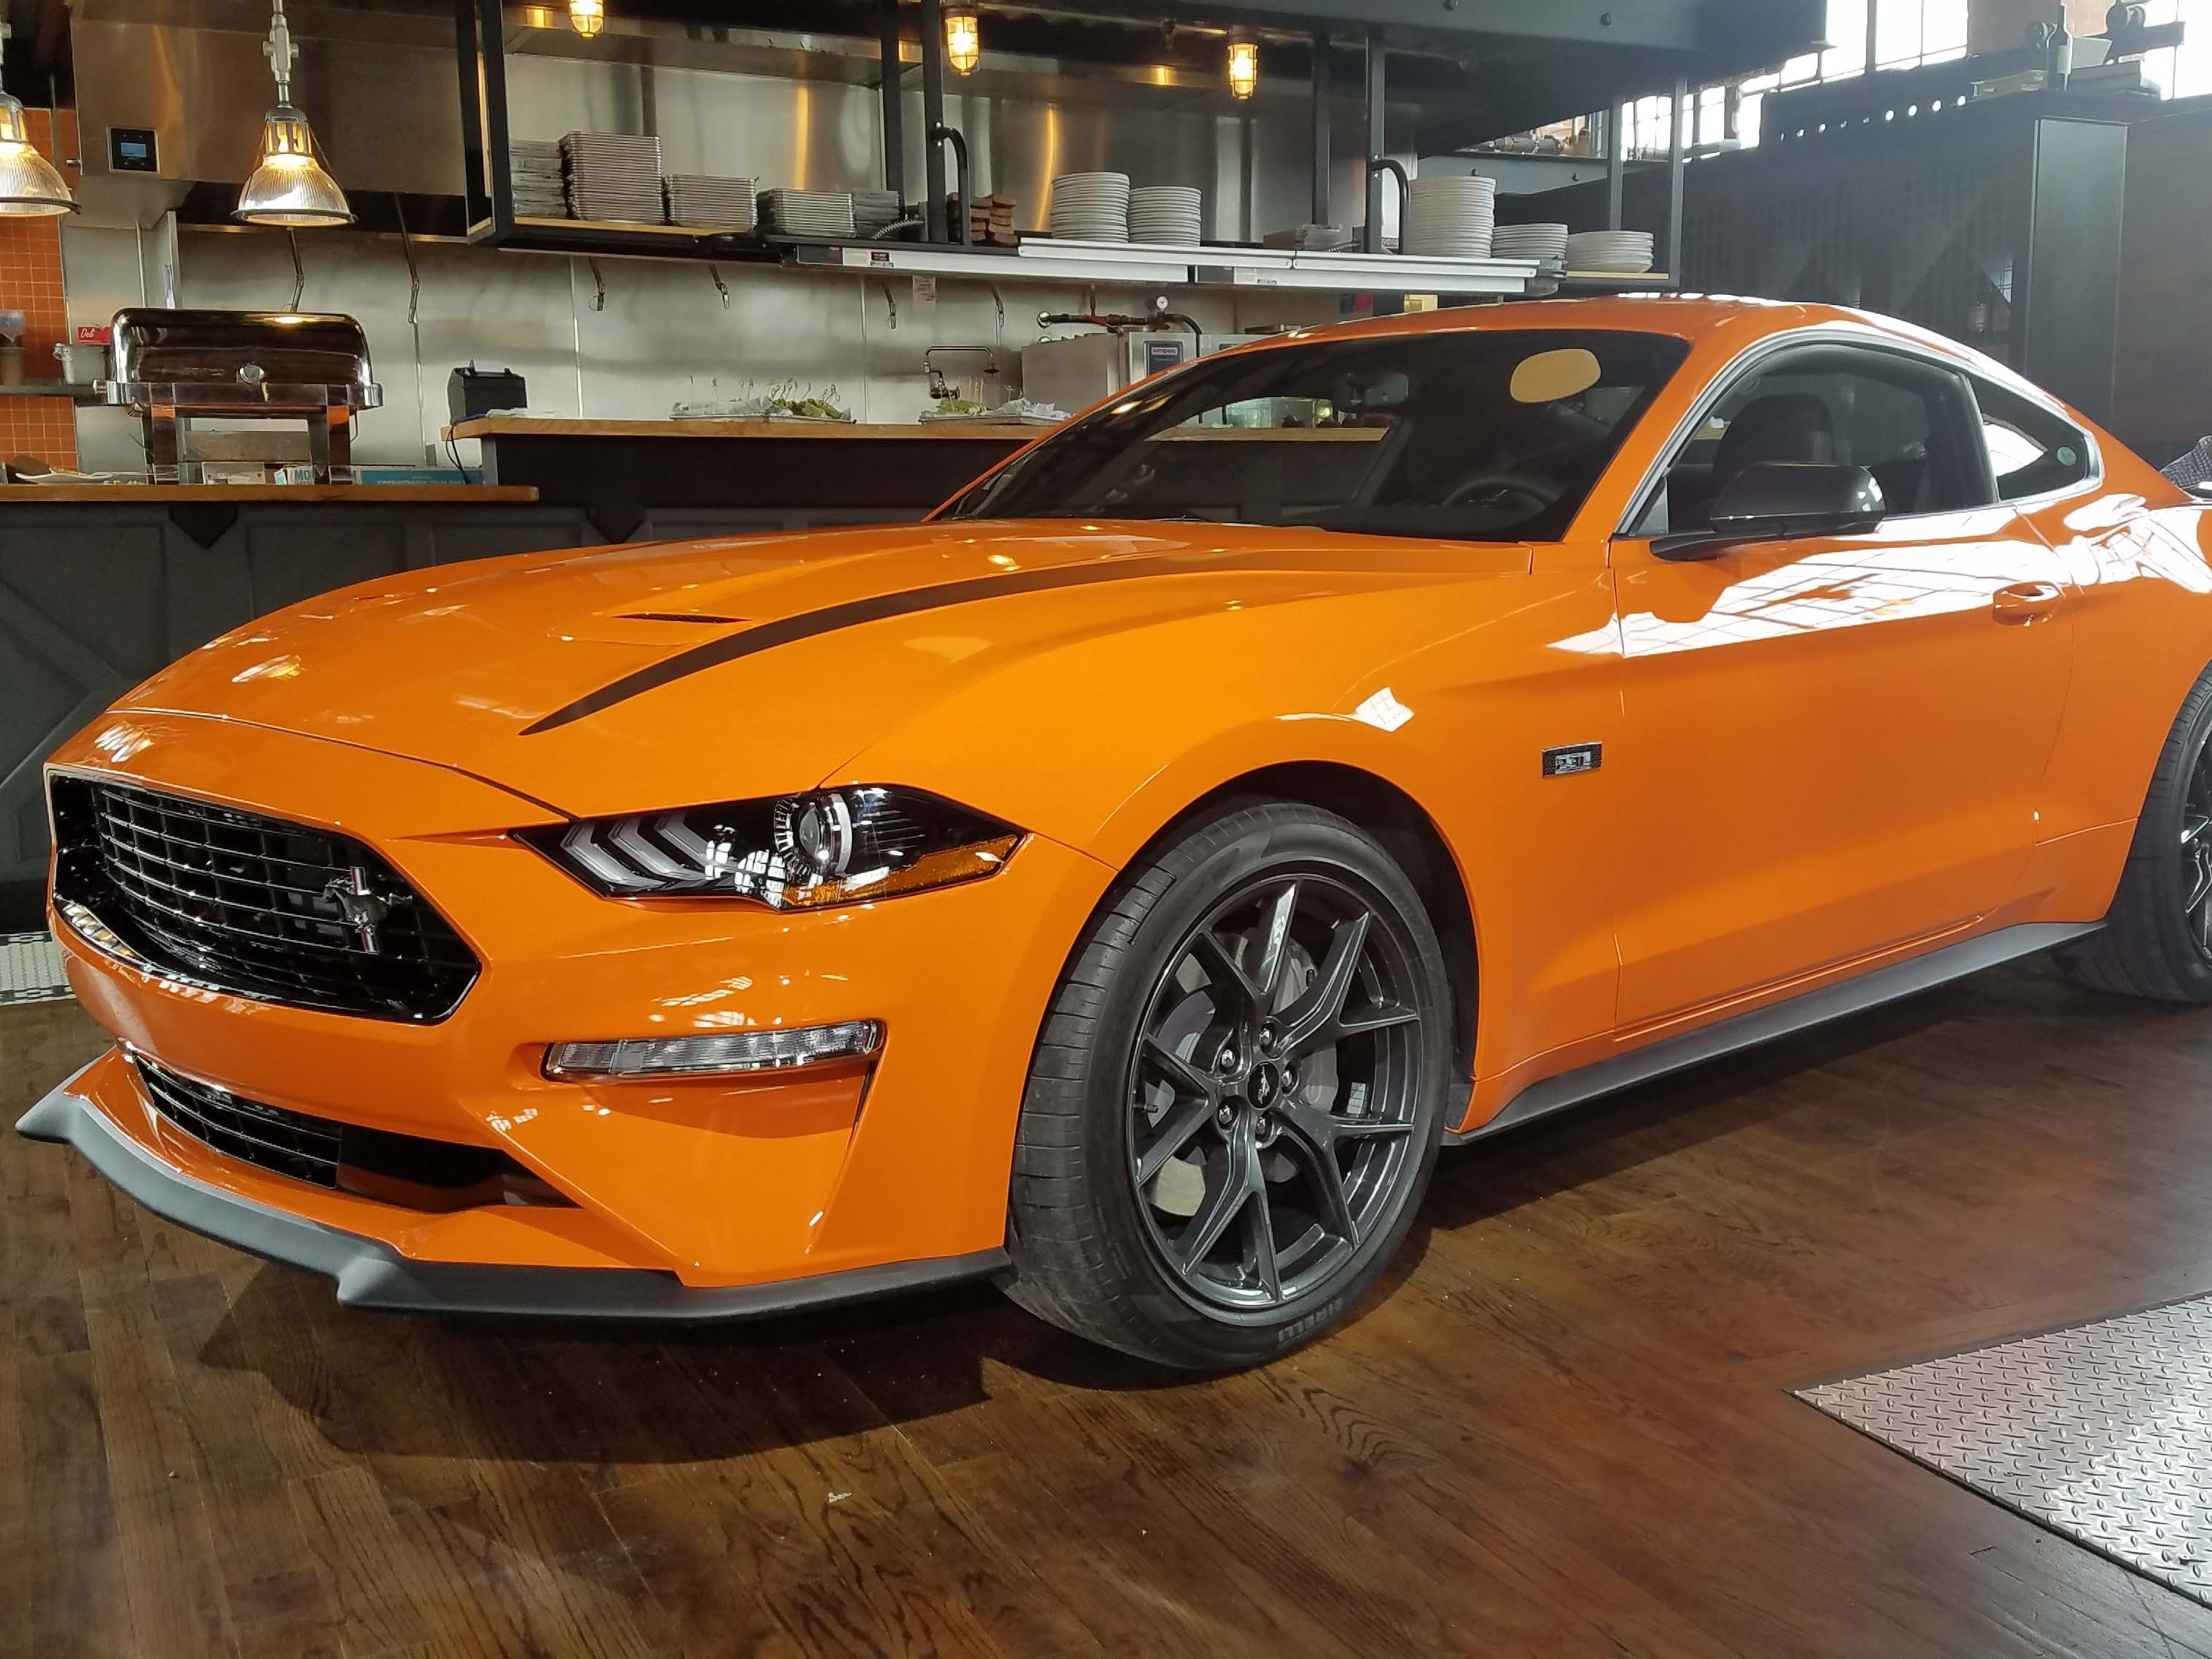 The Ford Mustang Ecoboost High Performance brings track-like performance to its turbo-4 lineup. V-8 powered Mustangs have long had high-performance options.